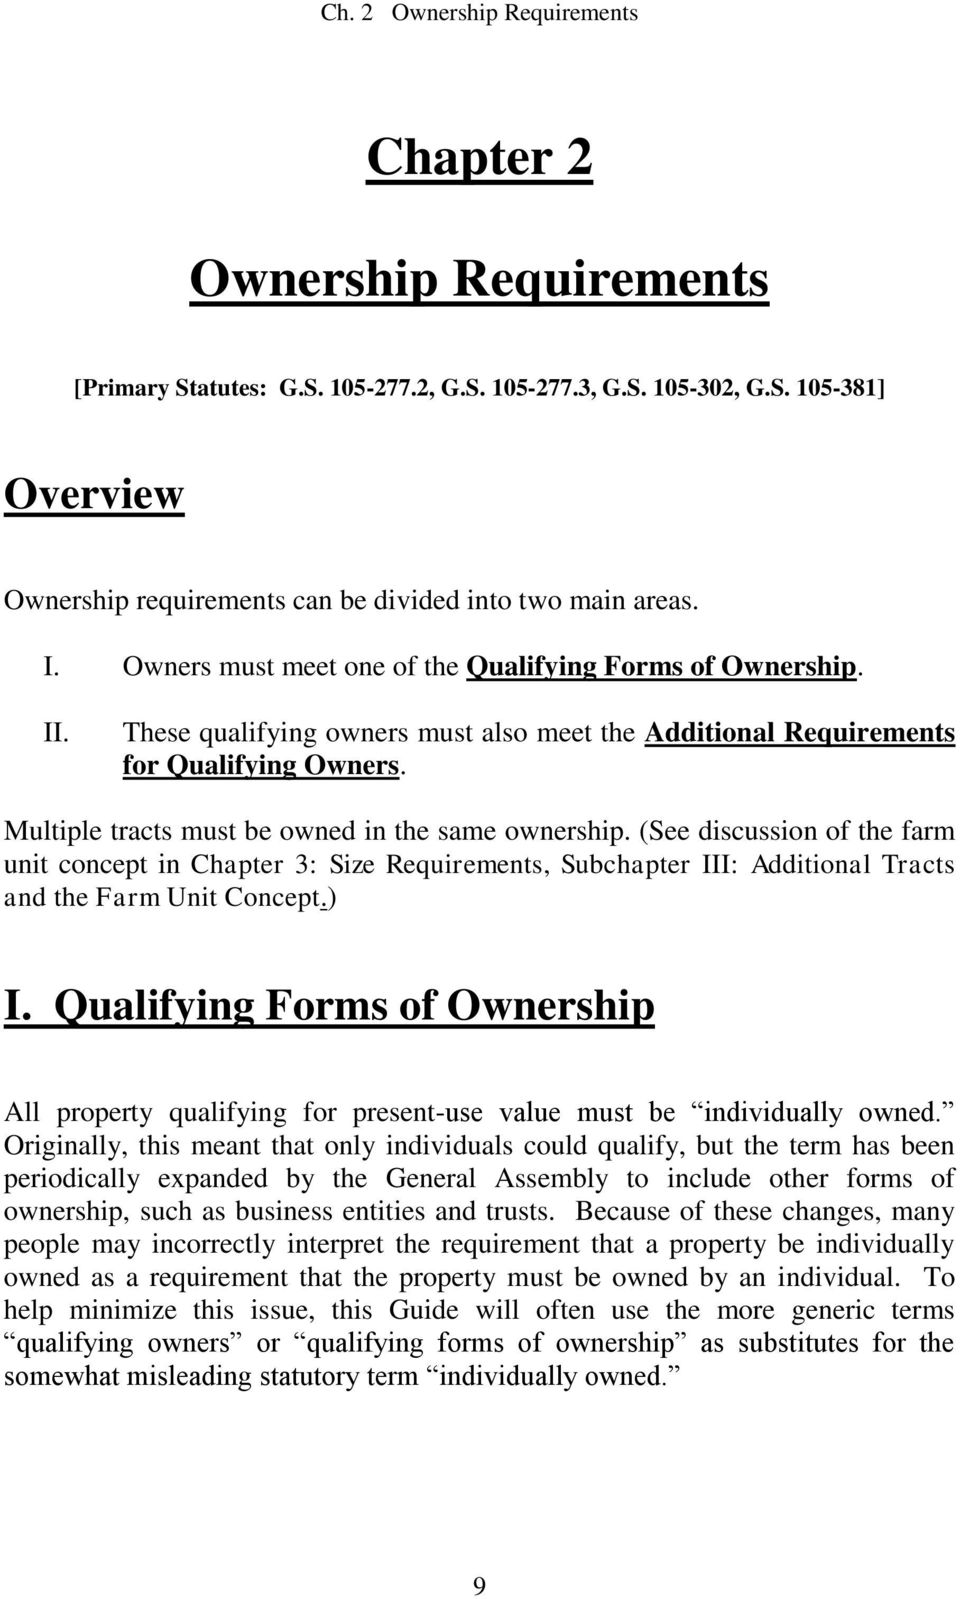 Multiple tracts must be owned in the same ownership. (See discussion of the farm unit concept in Chapter 3: Size Requirements, Subchapter III: Additional Tracts and the Farm Unit Concept.) I.